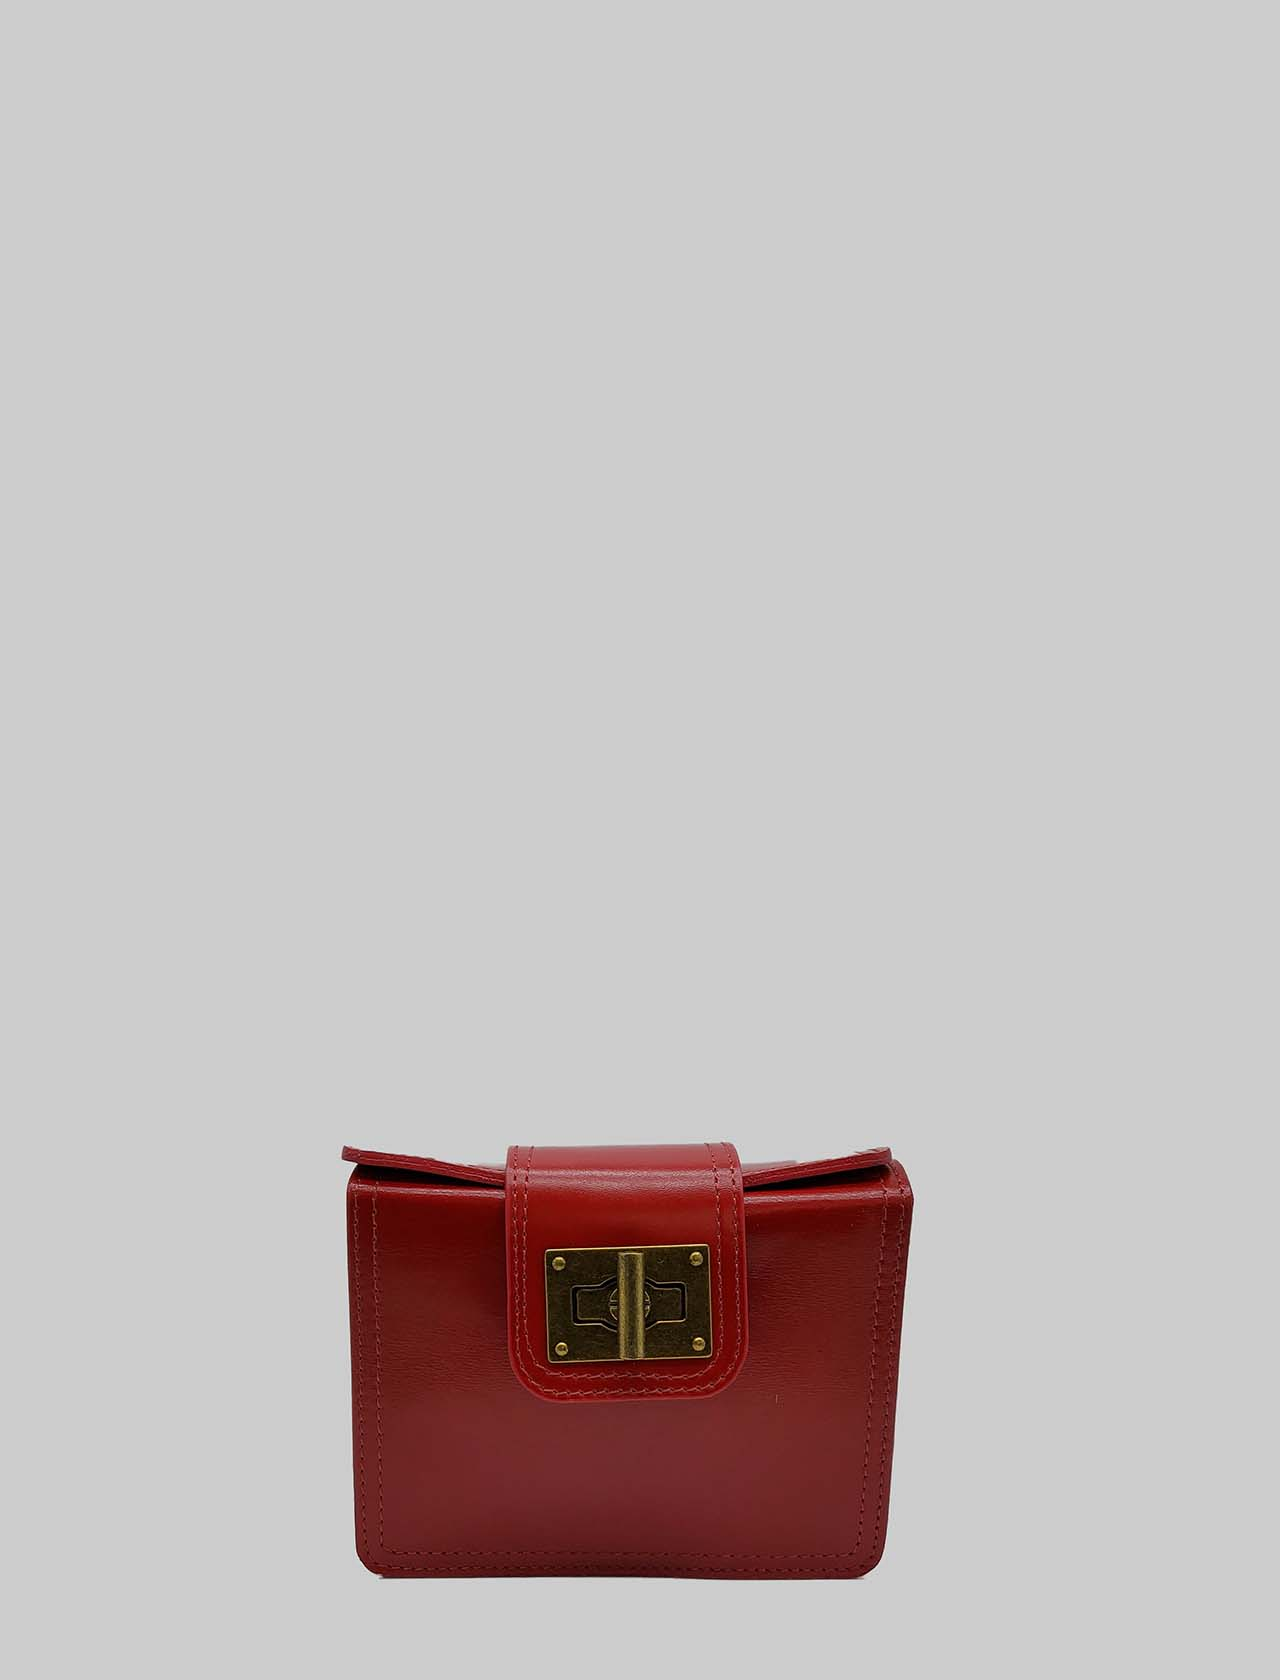 Women's Bags Clutch in Red Small Leather with Adjustable Leather Rigid Shoulder Strap Spatarella | Bags and backpacks | PE0204017